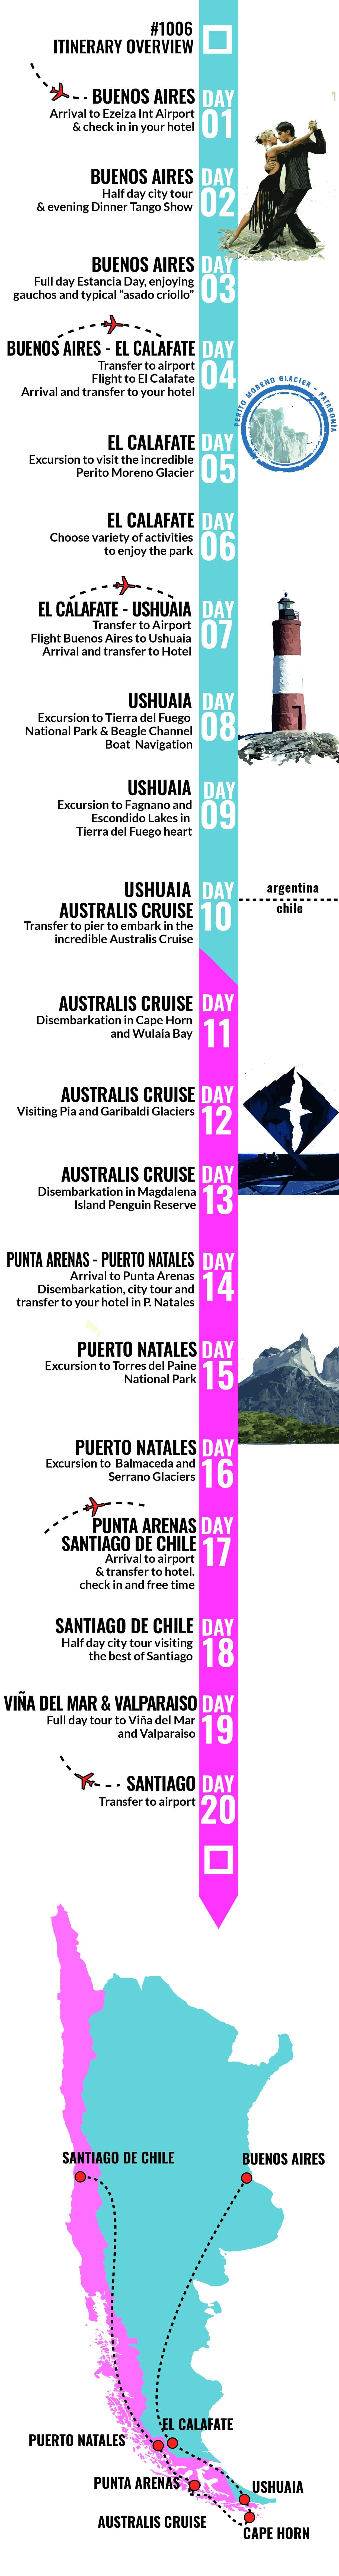 Incredible Patagonia with Australis Cruise - RipioTurismo DMC for Argentina and Chile